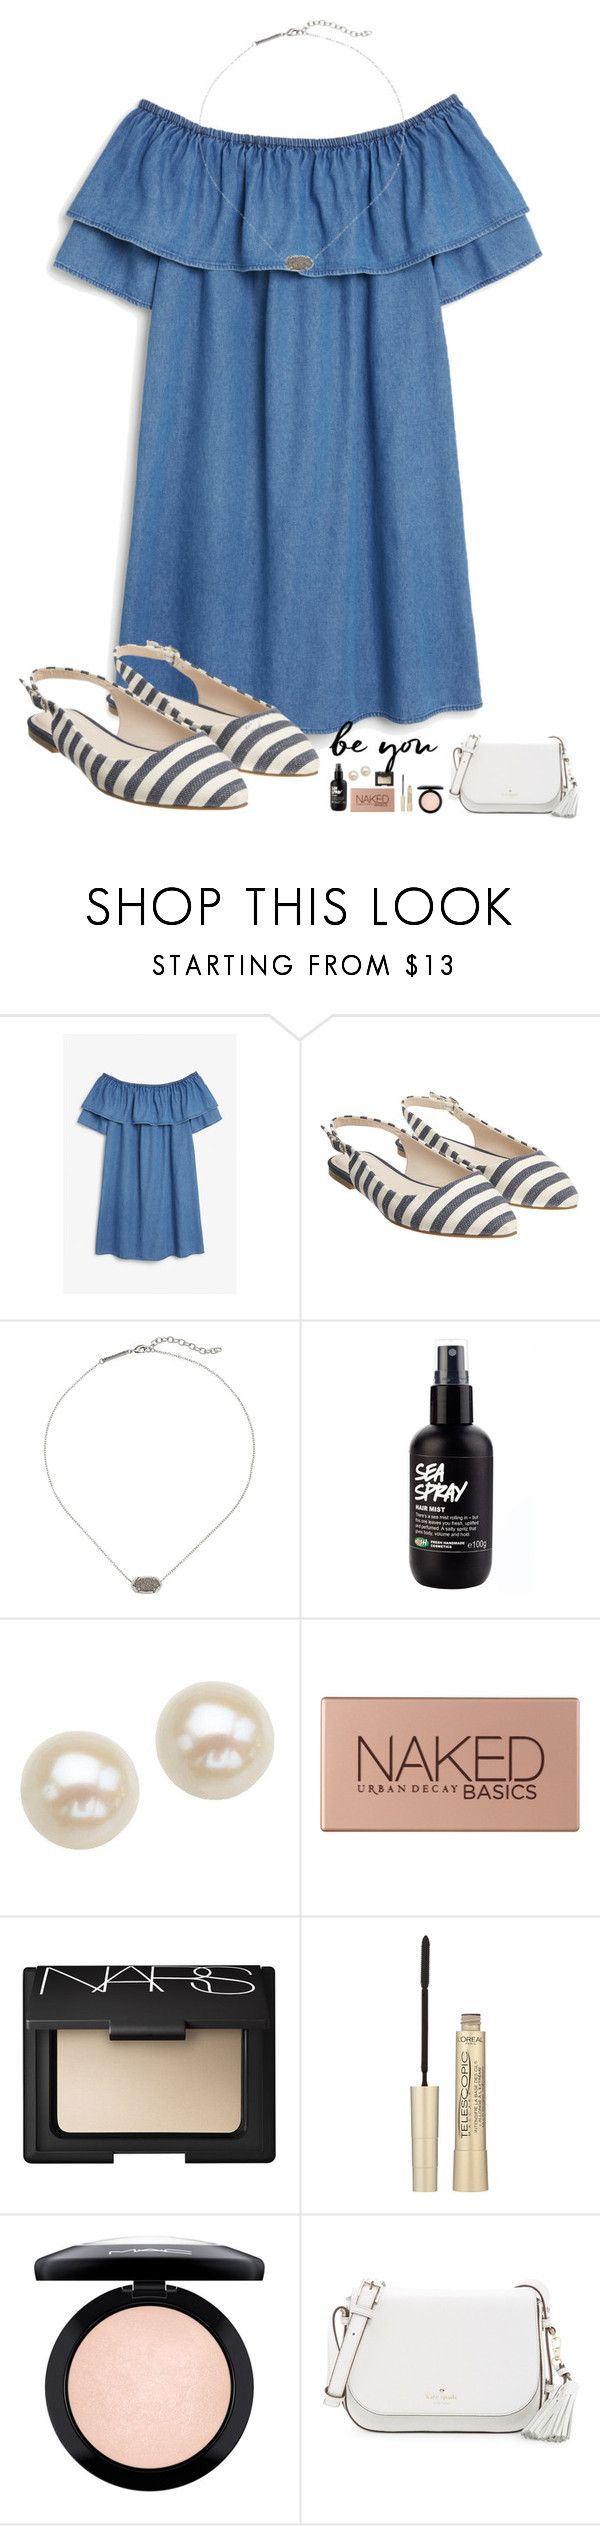 """""""Good morning lovelies"""" by kolbee24 ❤ liked on Polyvore featuring beauty, Monki, Monsoon, Kendra Scott, Honora, Urban Decay, L'Oréal Paris, MAC Cosmetics, Kate Spade and vintage"""